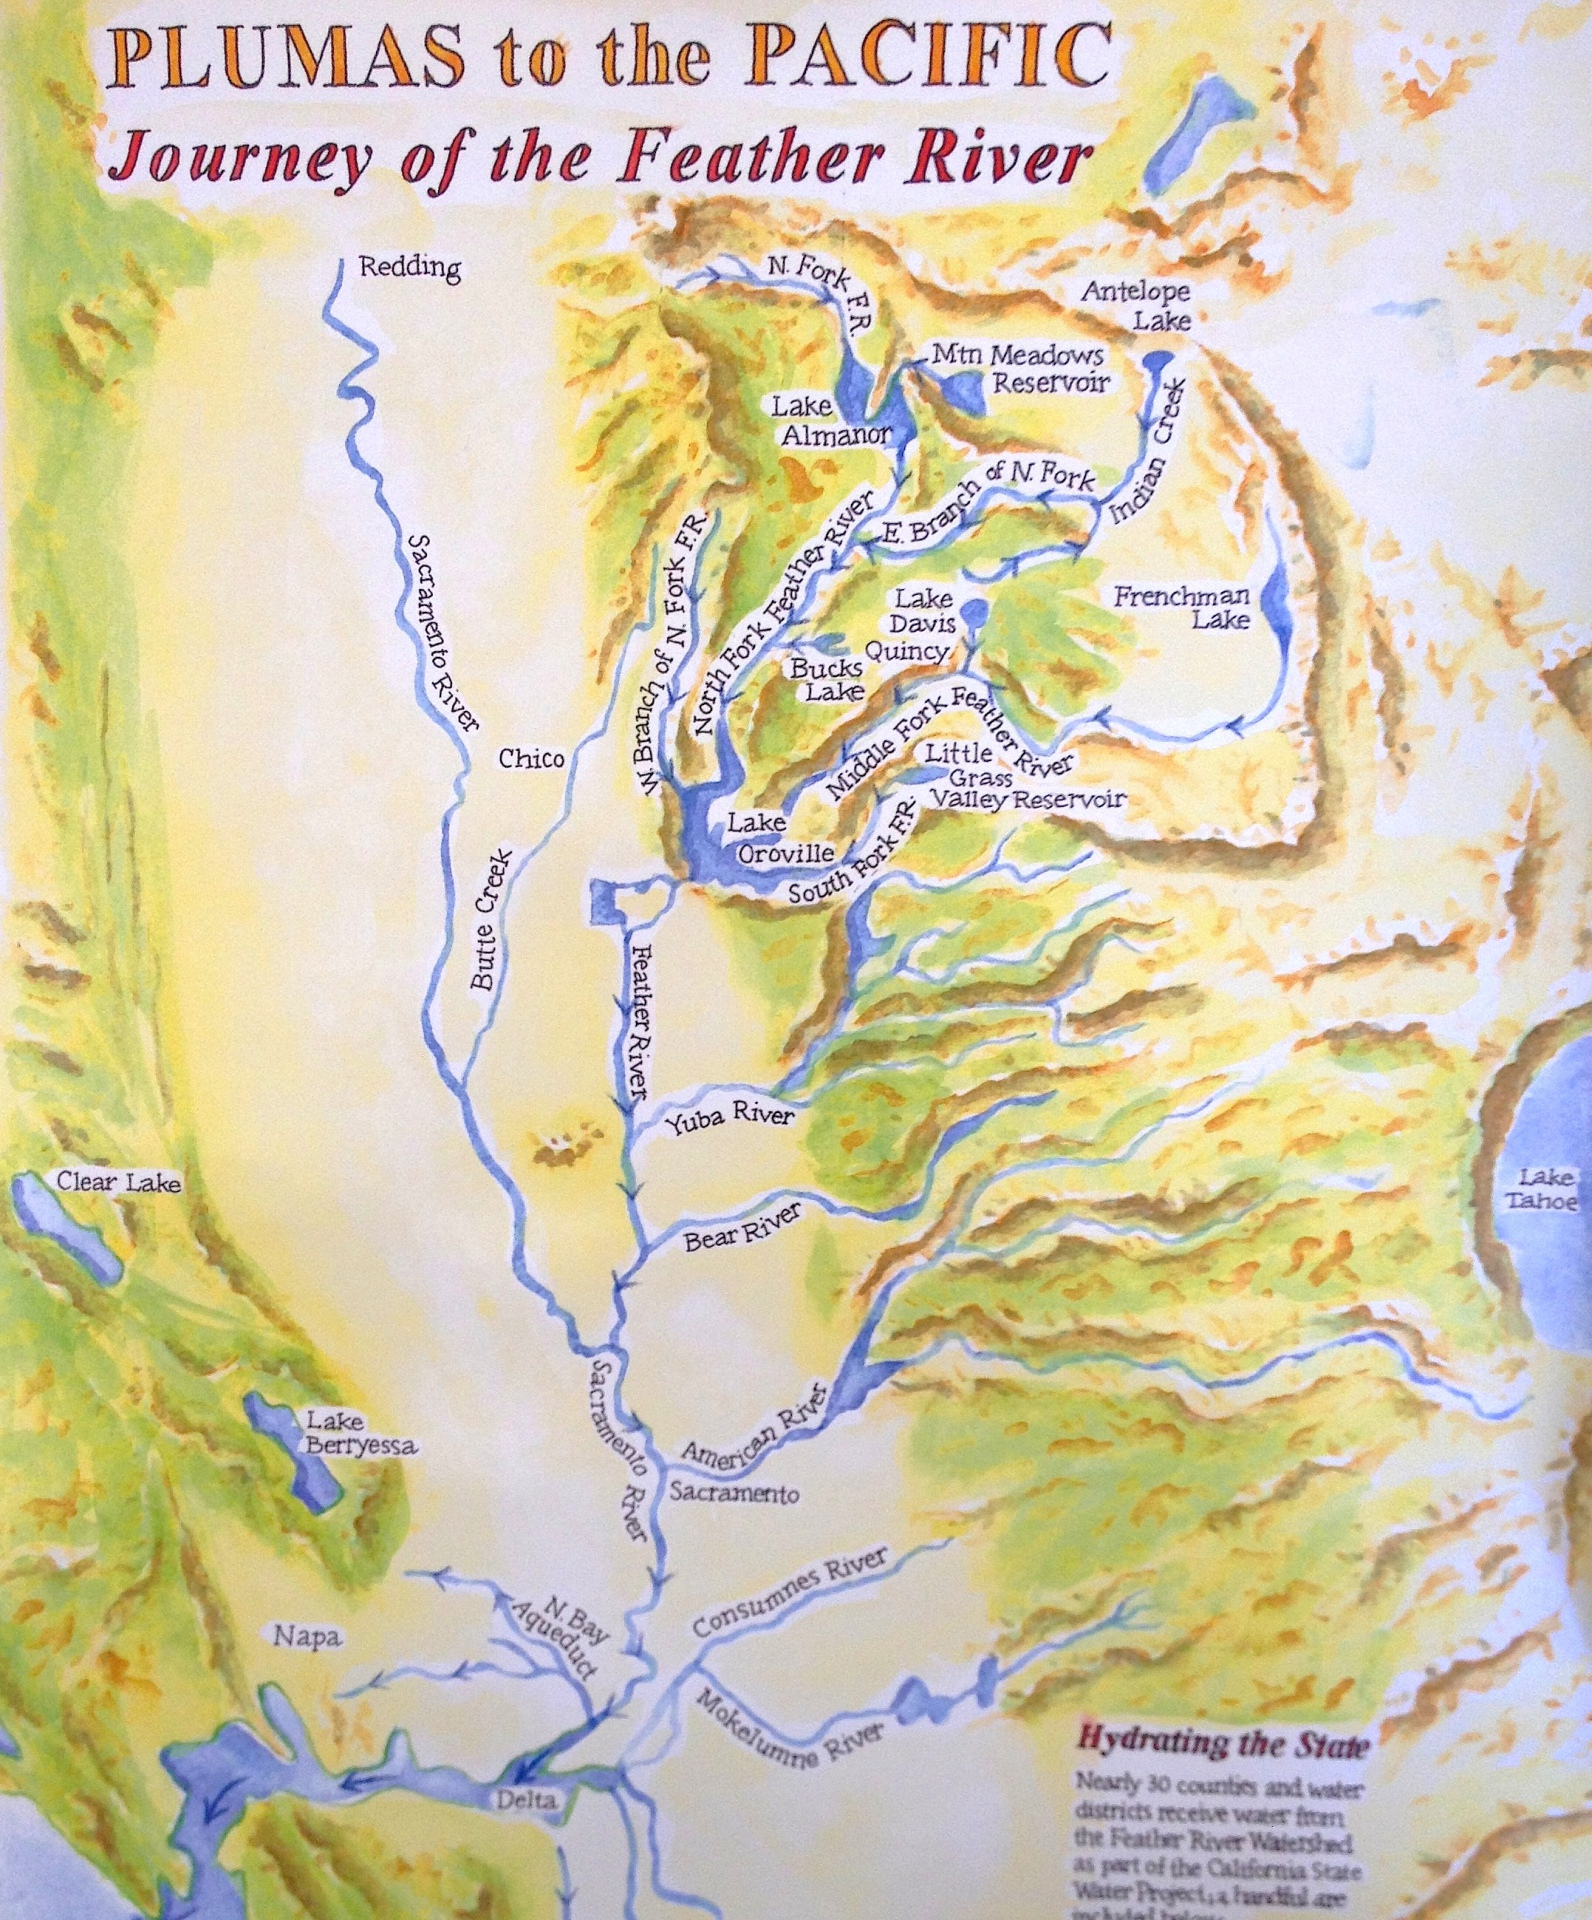 feather river watershed to the pacific